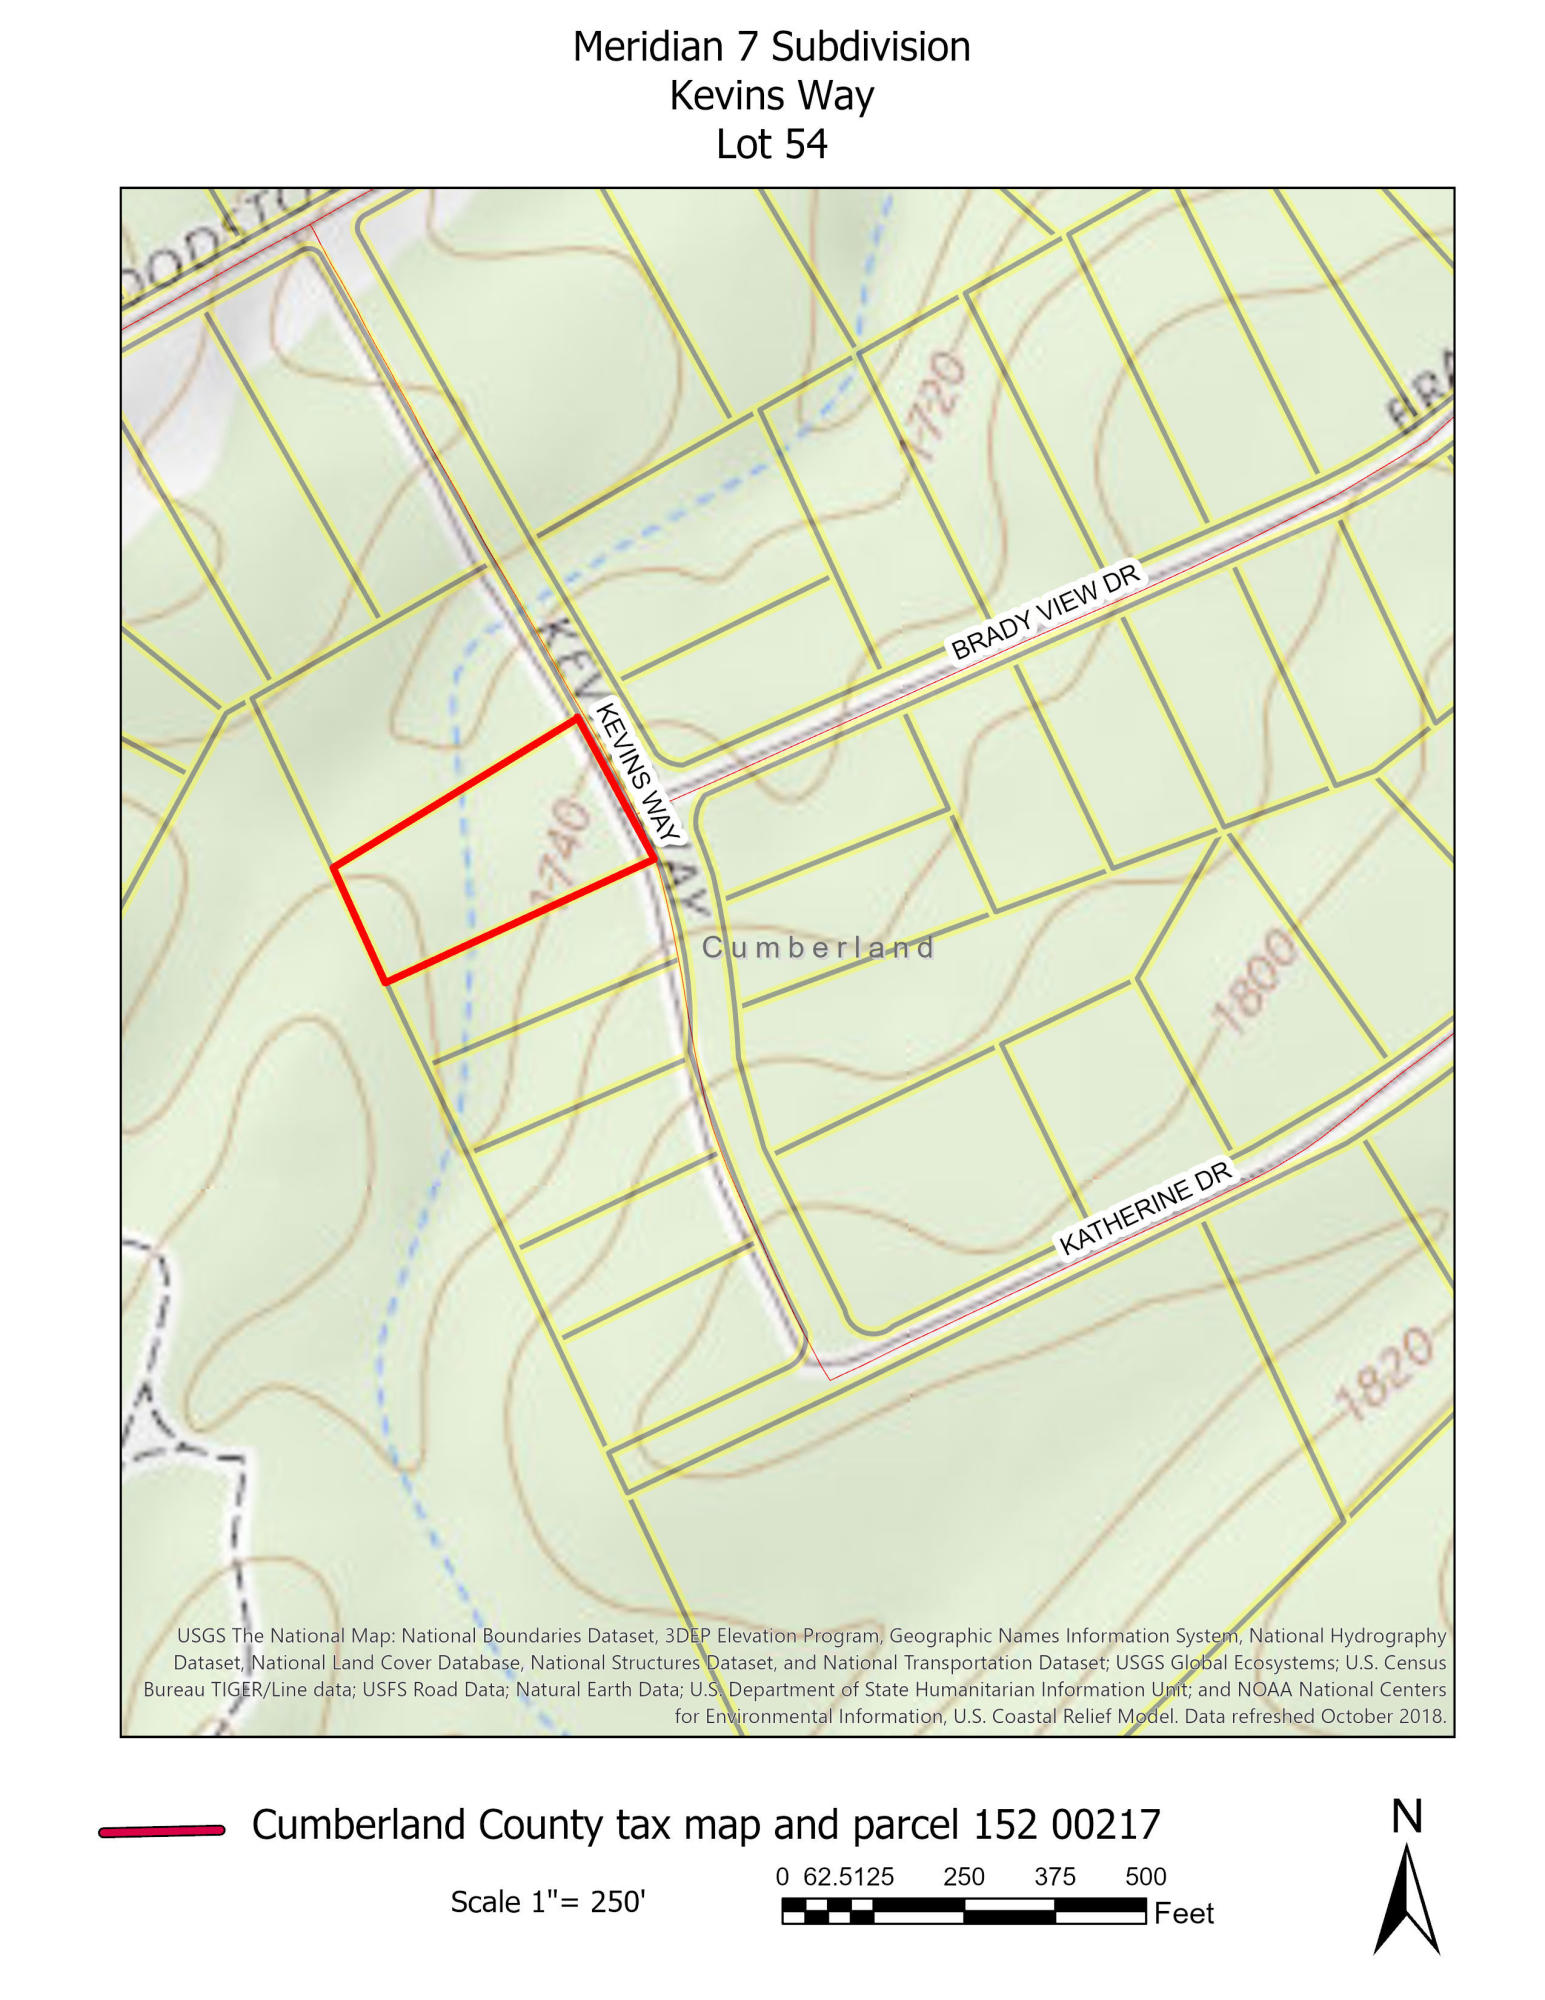 Lot # 54 Kevins- Crossville- Tennessee- United States 38555, ,Lots & Acreage,For Sale,Lot # 54 Kevins,1021458